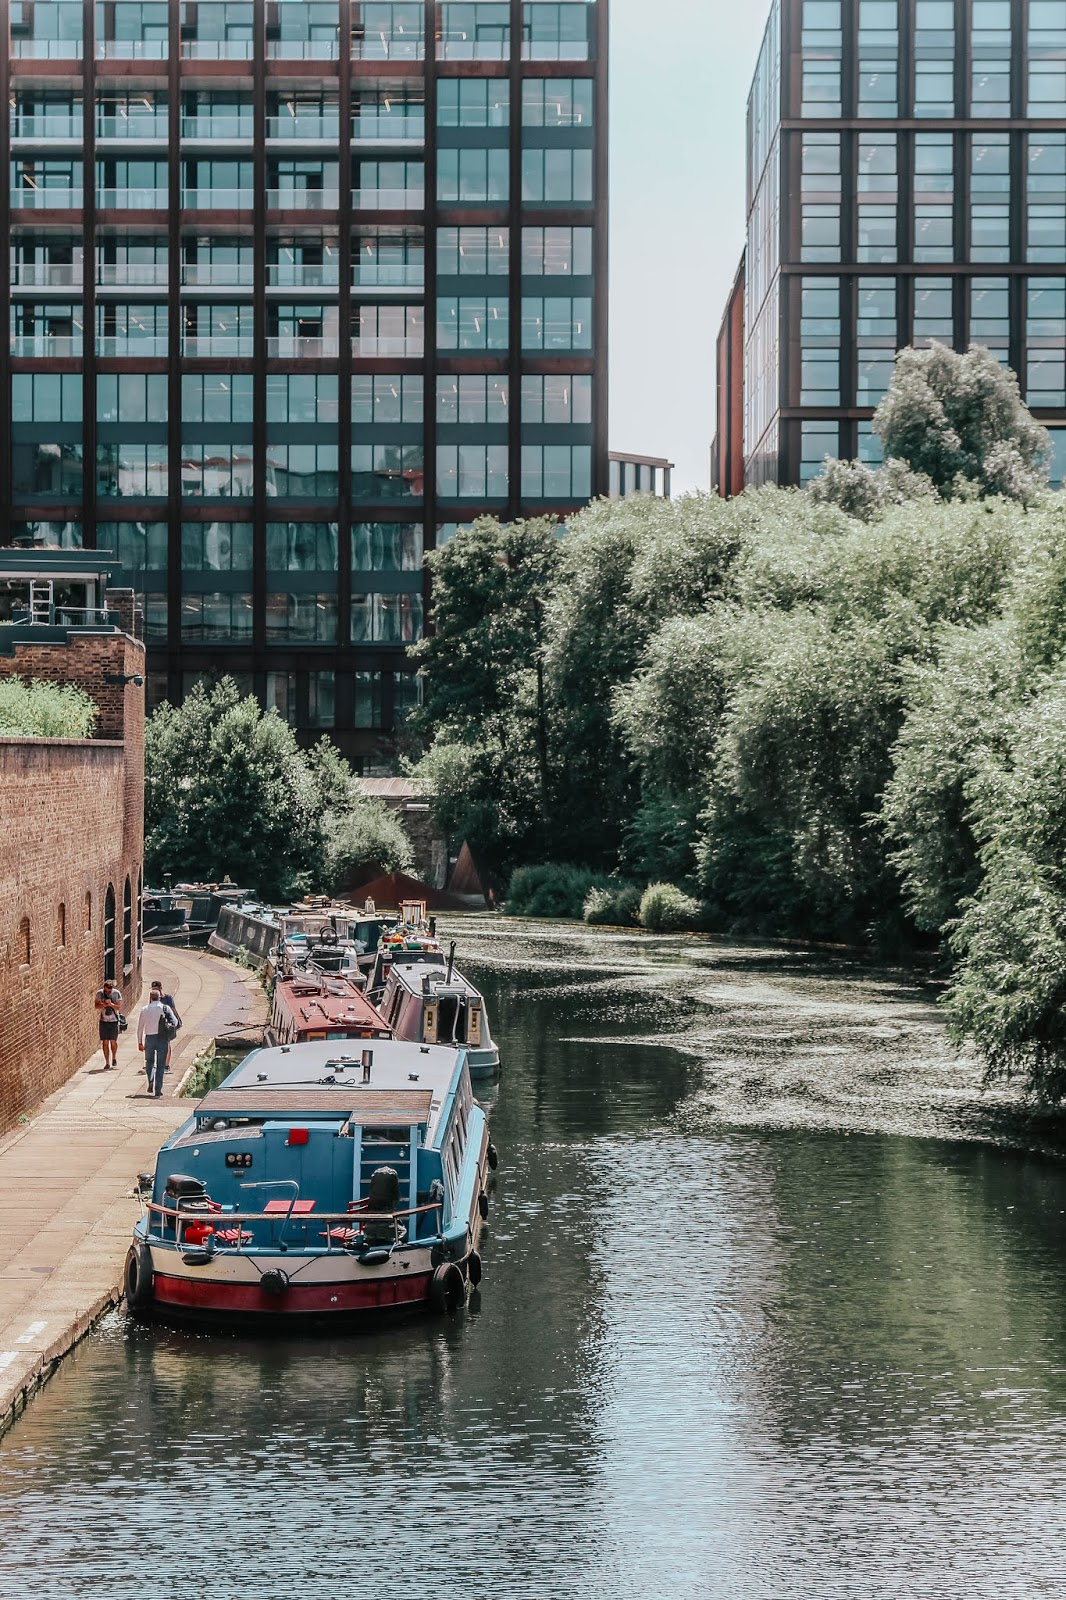 Regent's Canal in Summer 2018